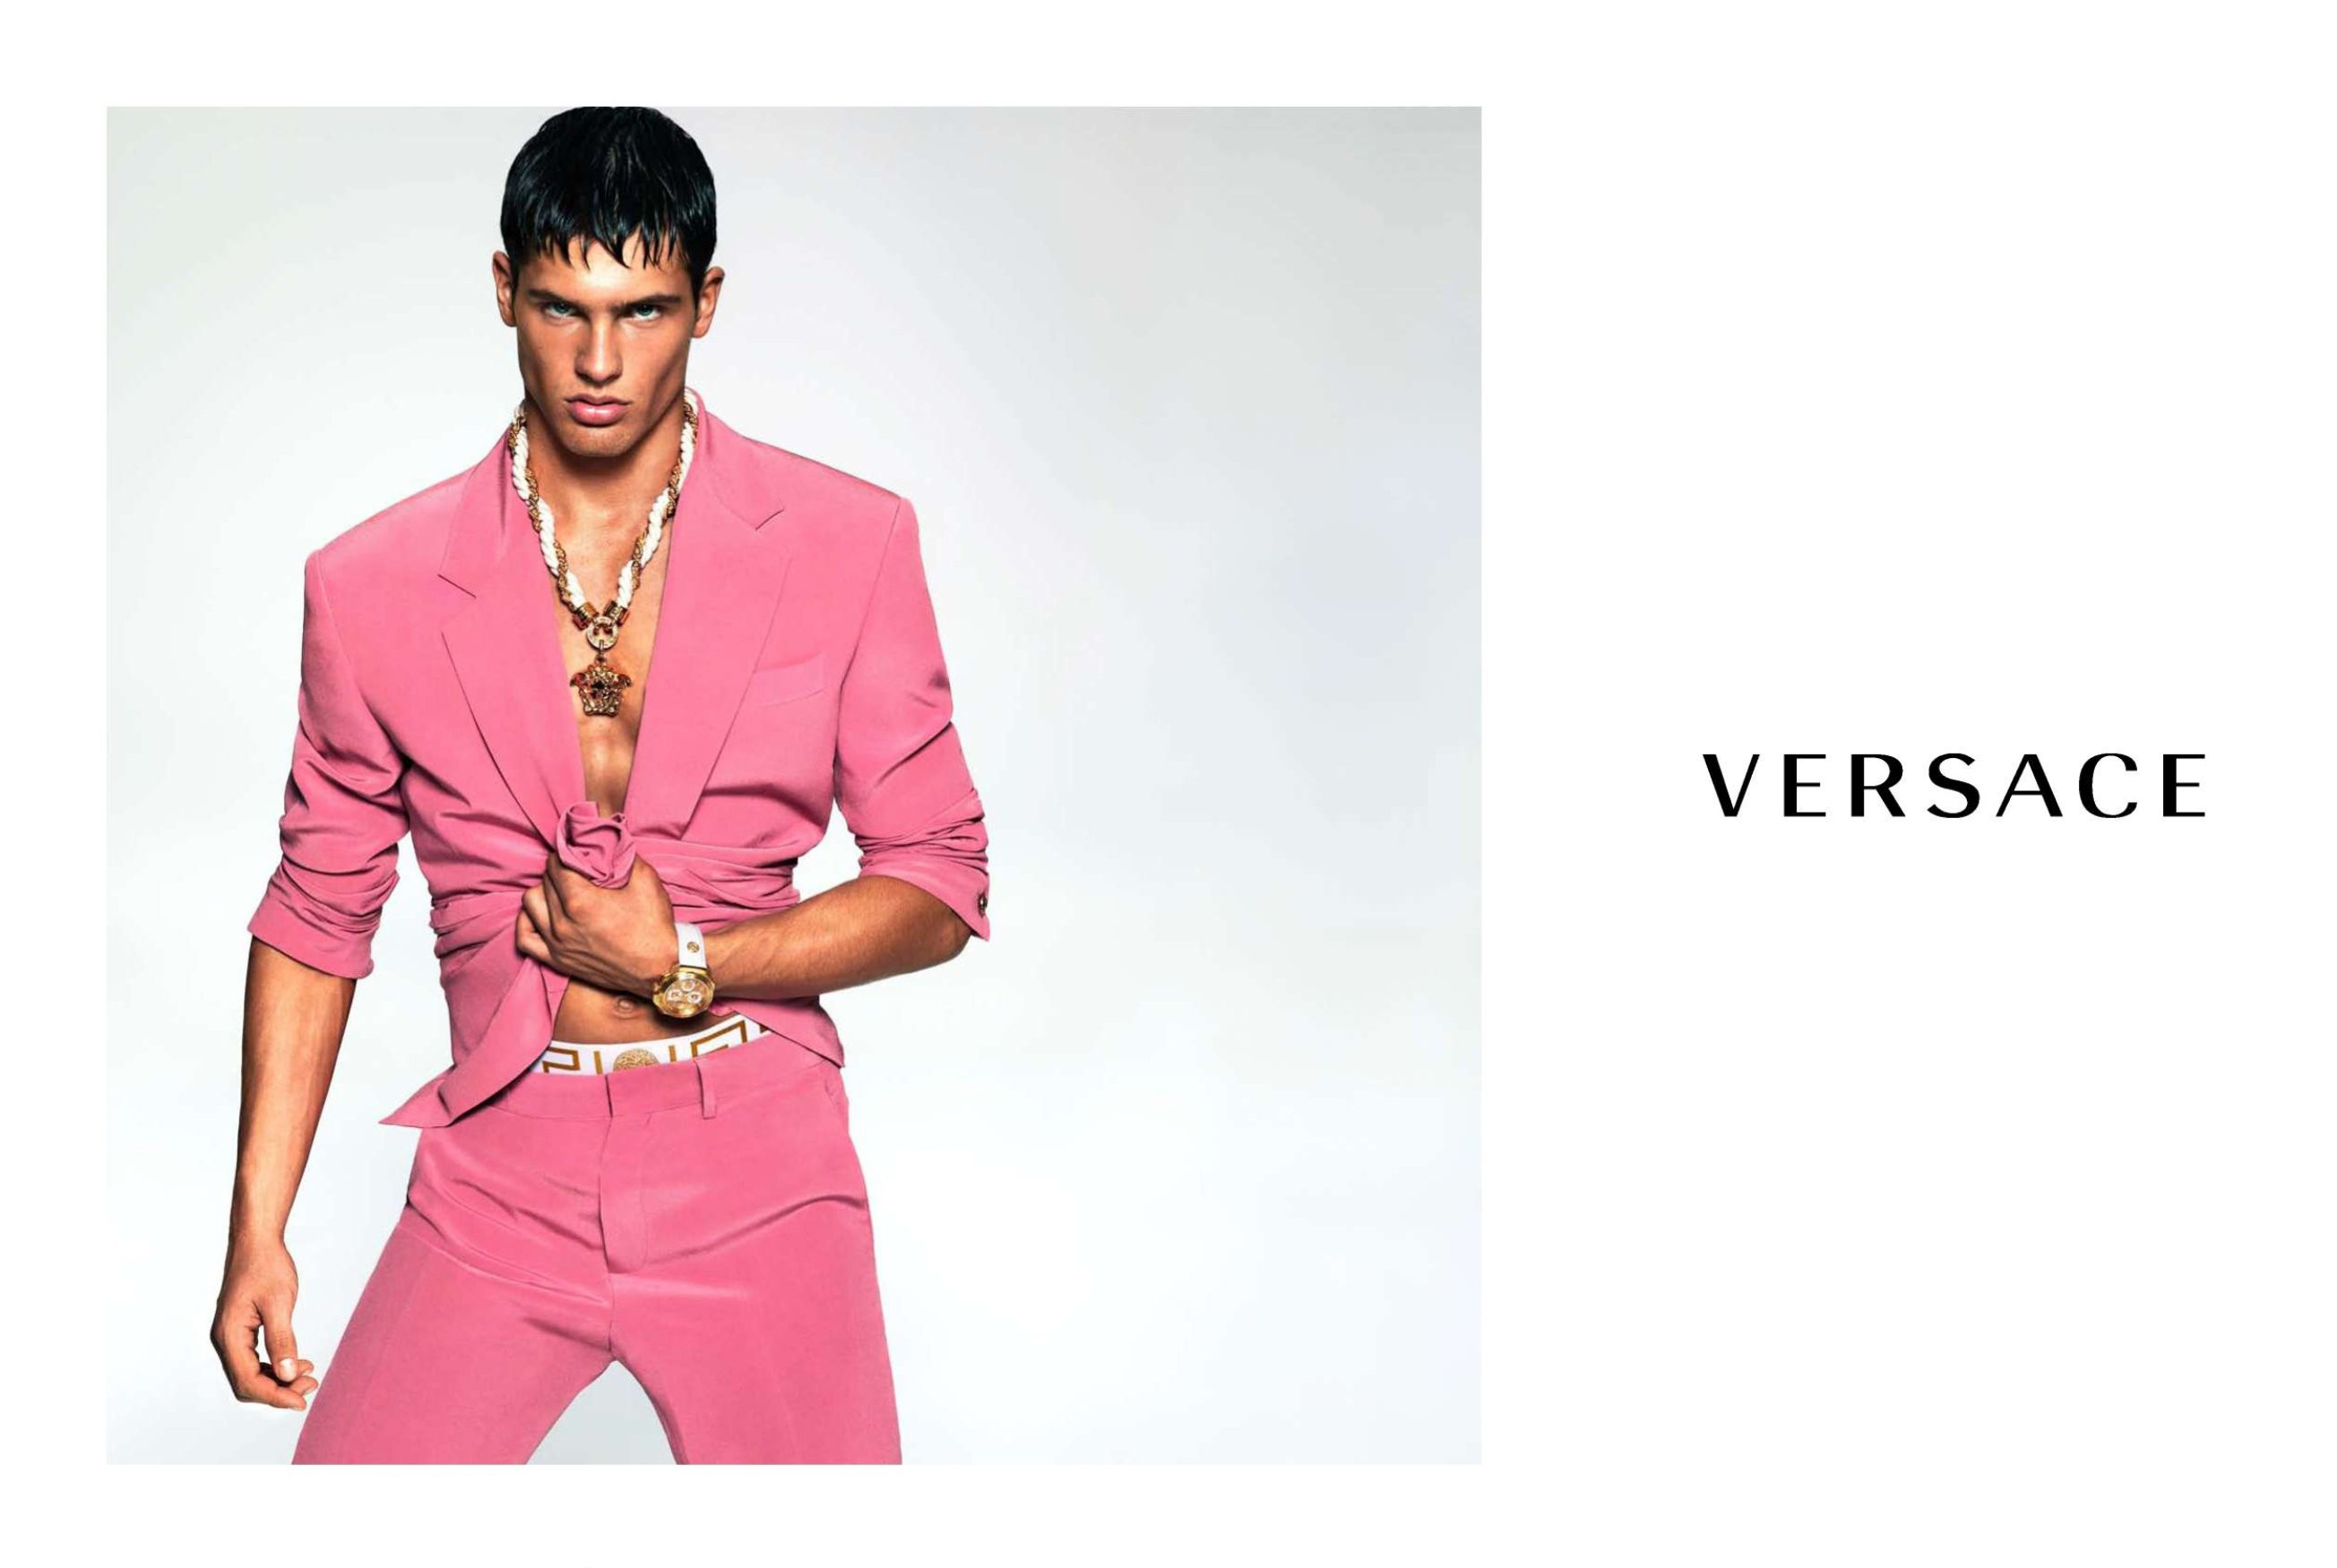 Versace Spring/Summer 2015 Campaign, Fashion Brands Men, Mens Fashion Campaign, StyleRug, Shutterbugs, Fashion Campaigns 2015, SPring/Summer Fashion For Men